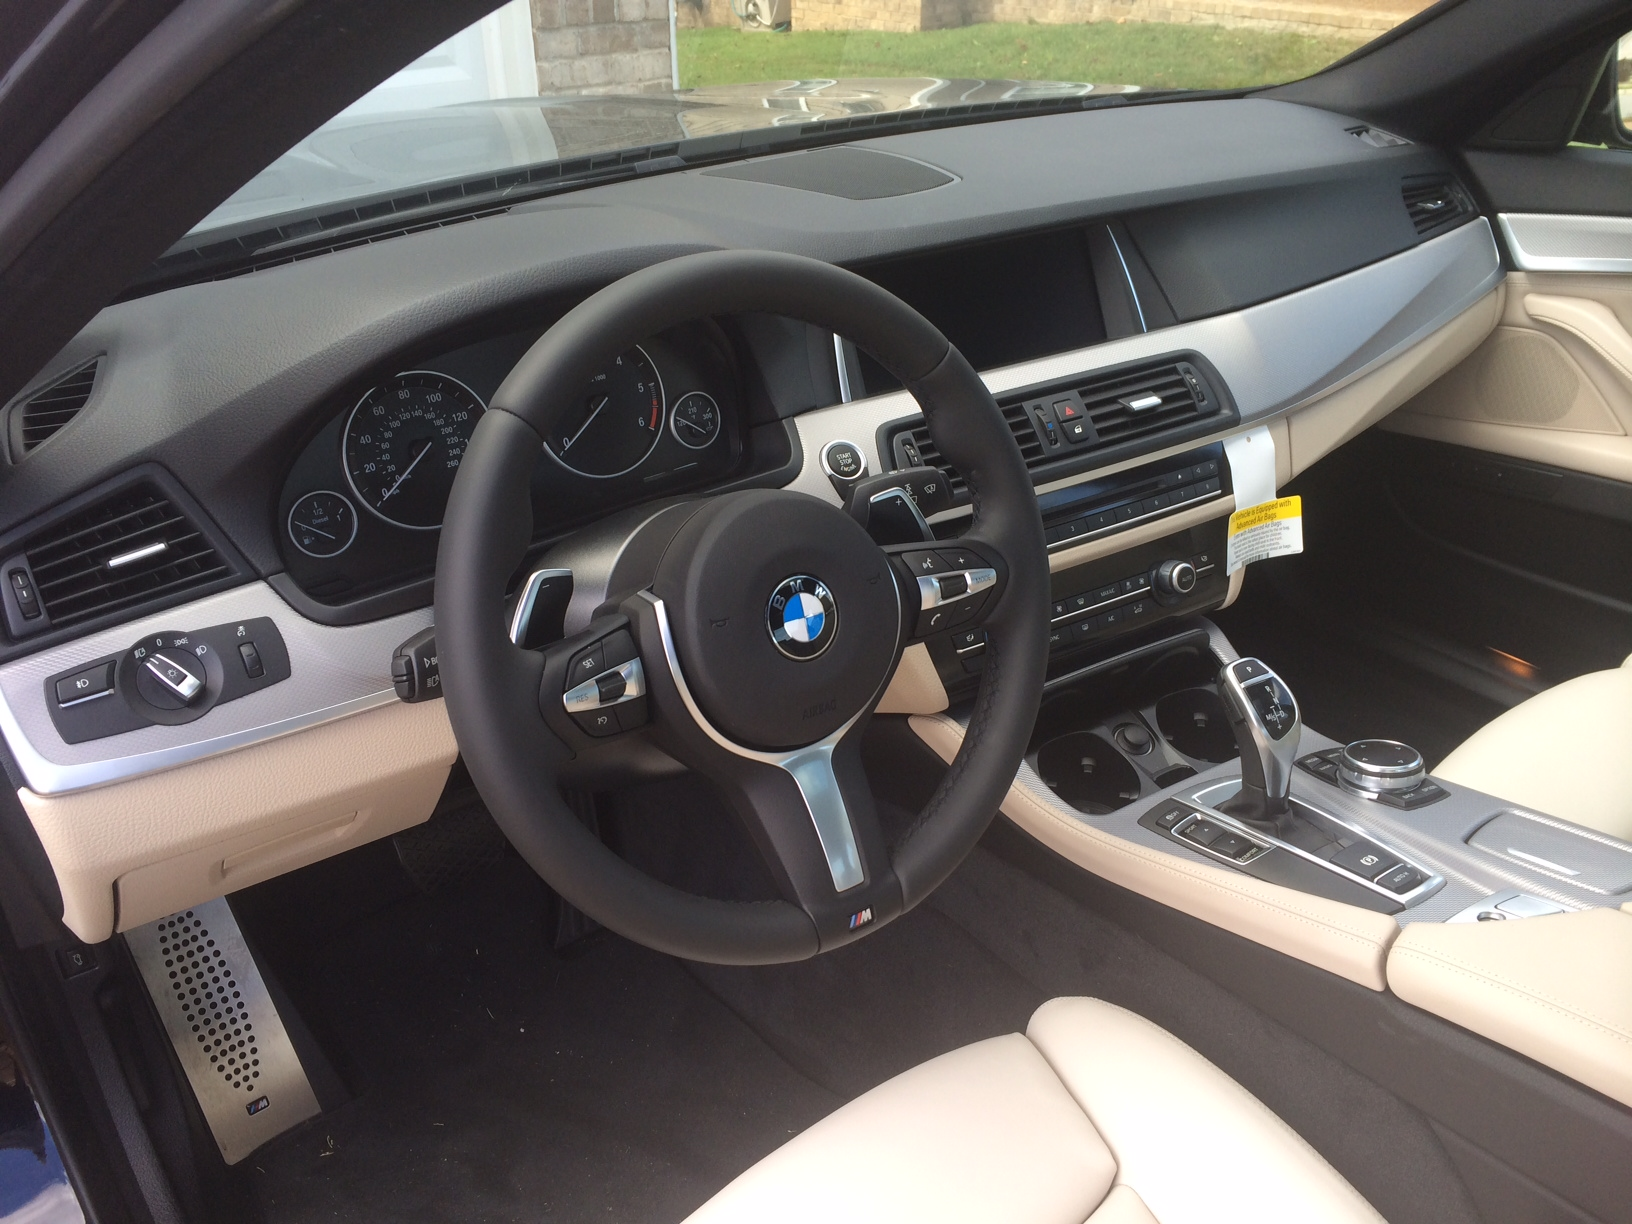 The BMW D Proof Diesel Cars Have A Place In The US - 2013 bmw 535d